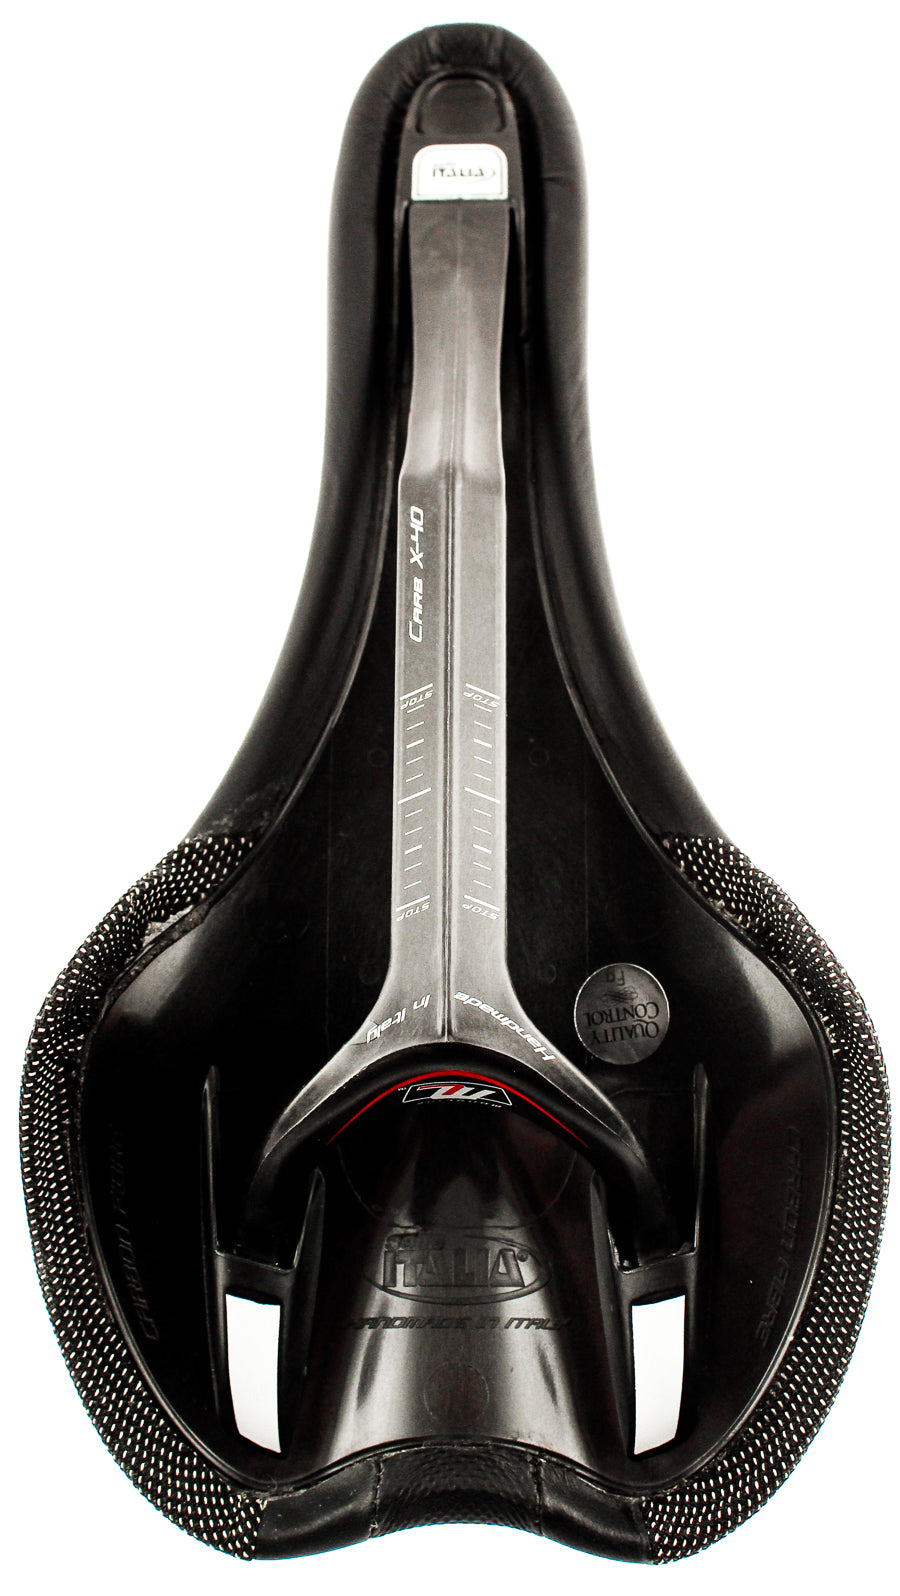 SELLE ITALIA SLR TRI MONOLINK Rail TT Bike Saddle Carbon Fiber X-40 black NEW